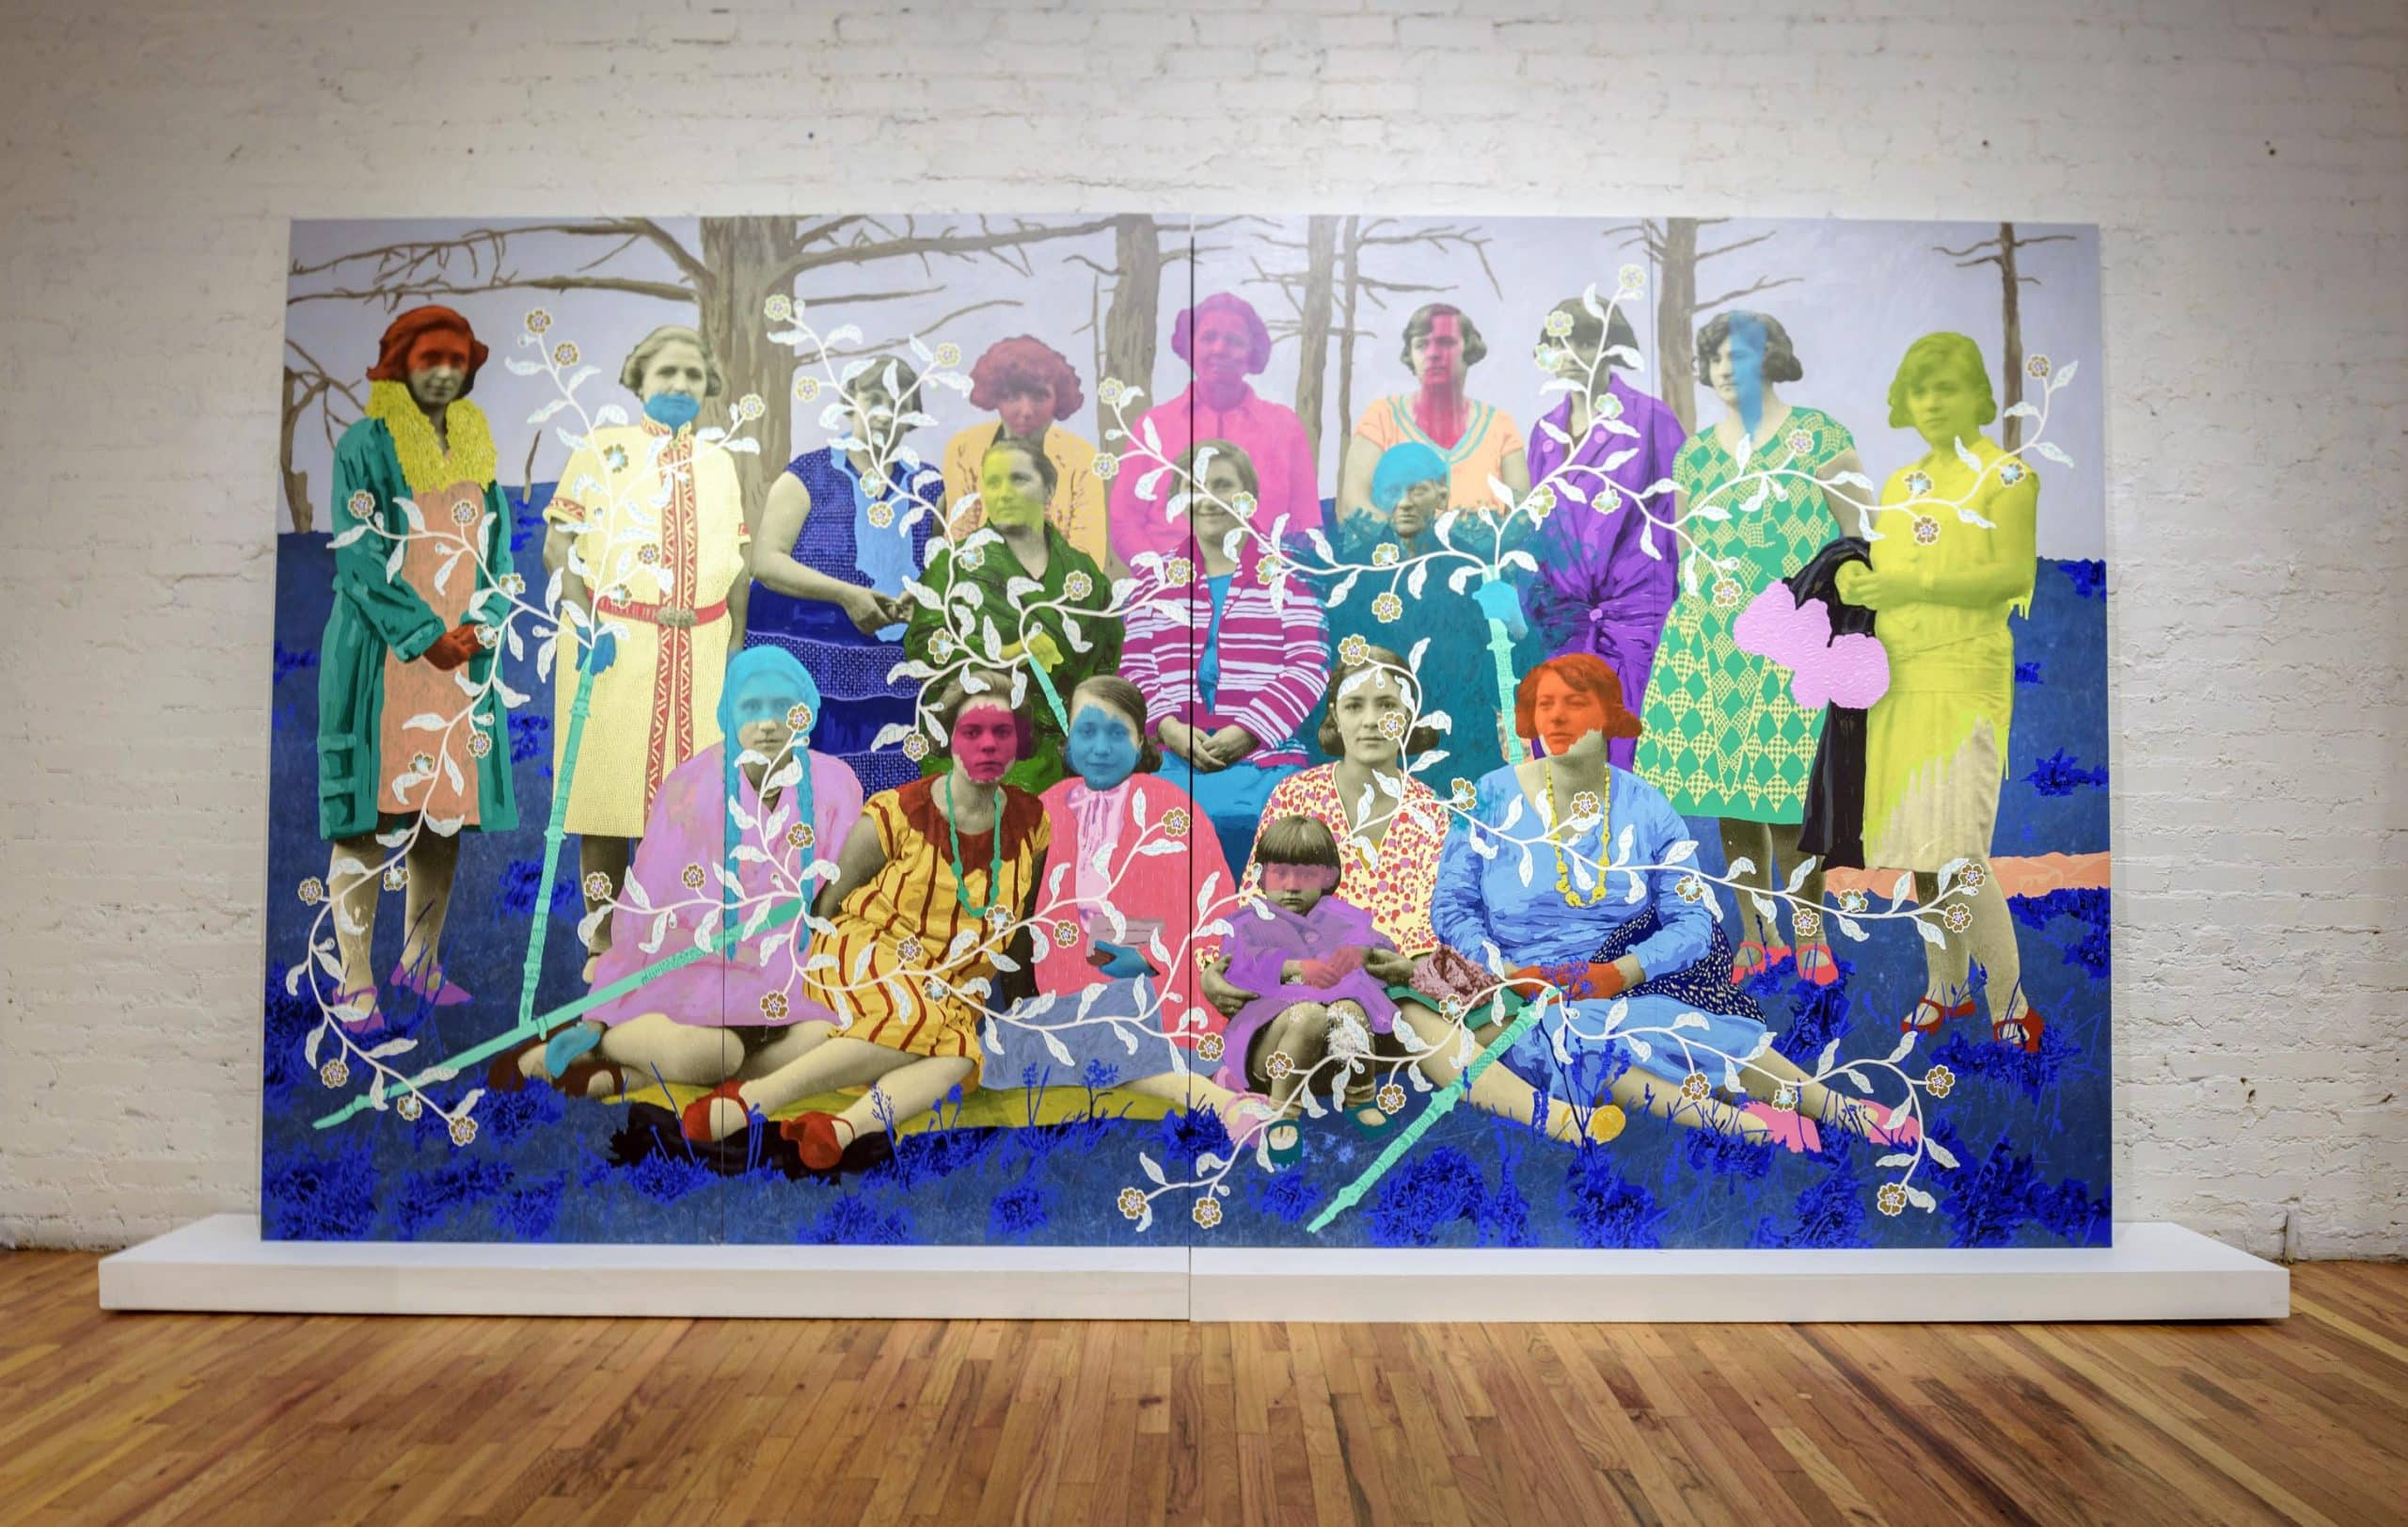 A monumental painting on blown-up photographs by Daisy Patton